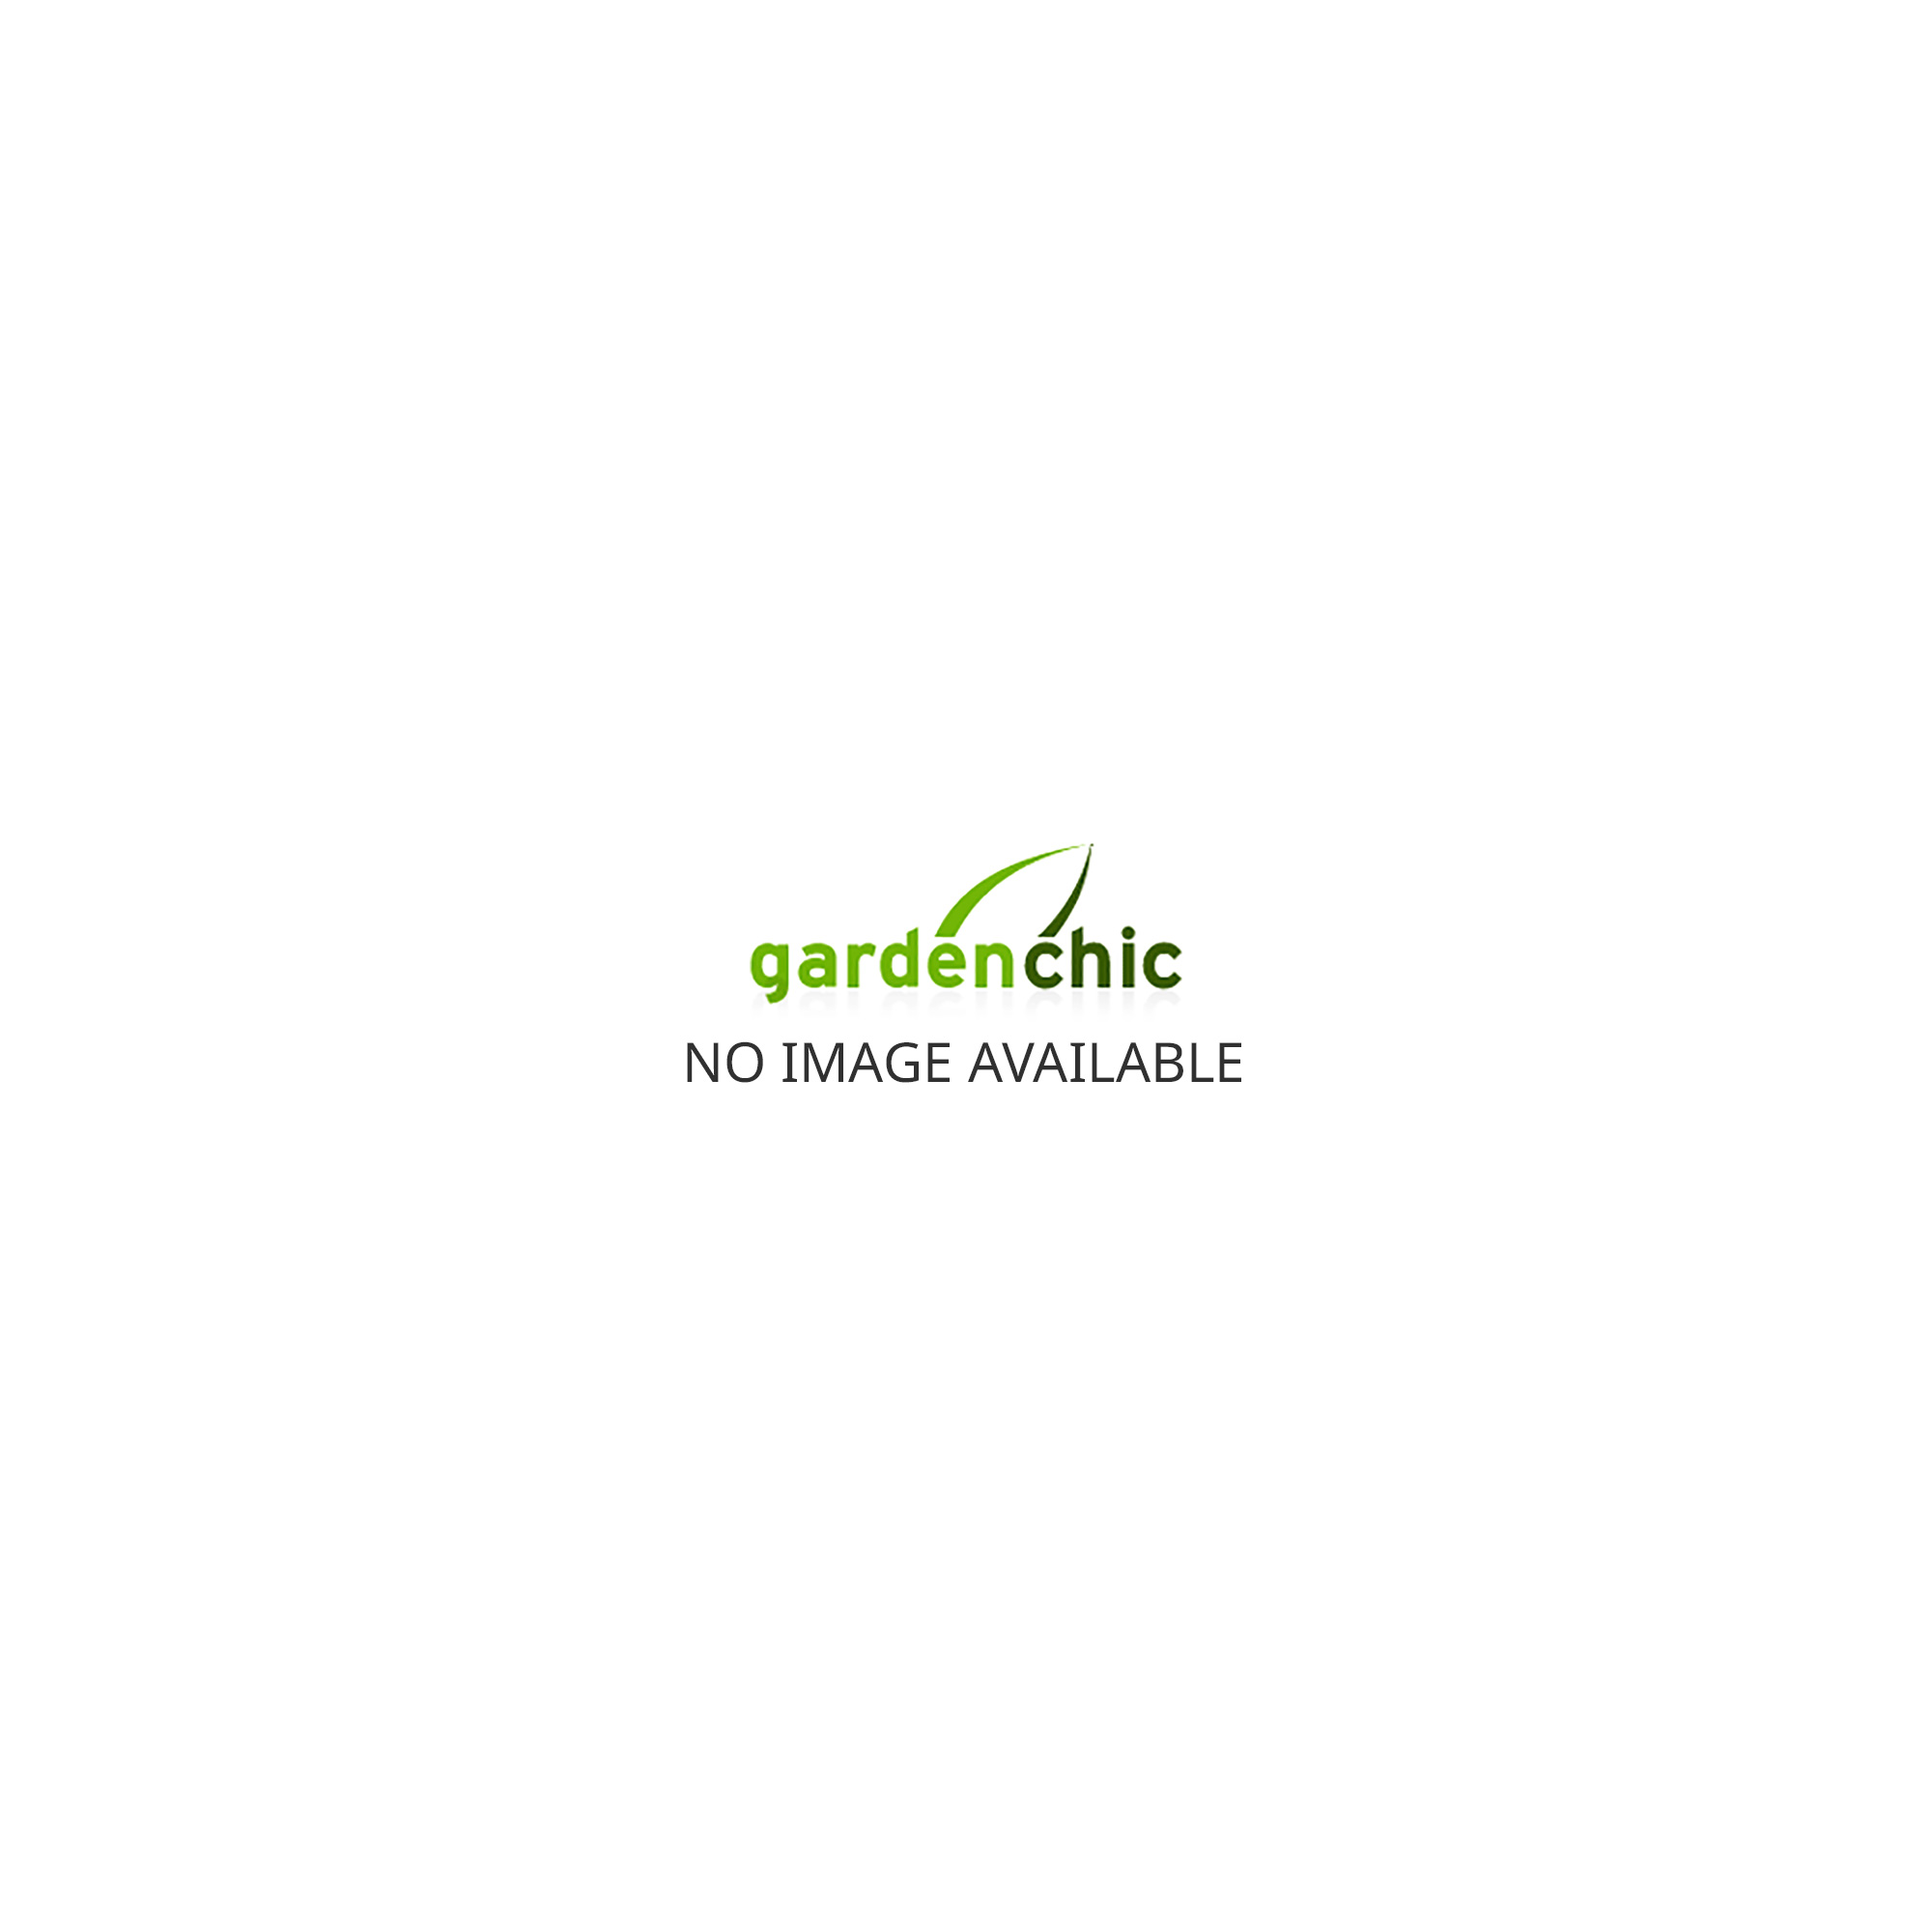 Orion 3800 6ft x 6ft Greenhouse - Silver FREE Matching Base until APRIL 2018